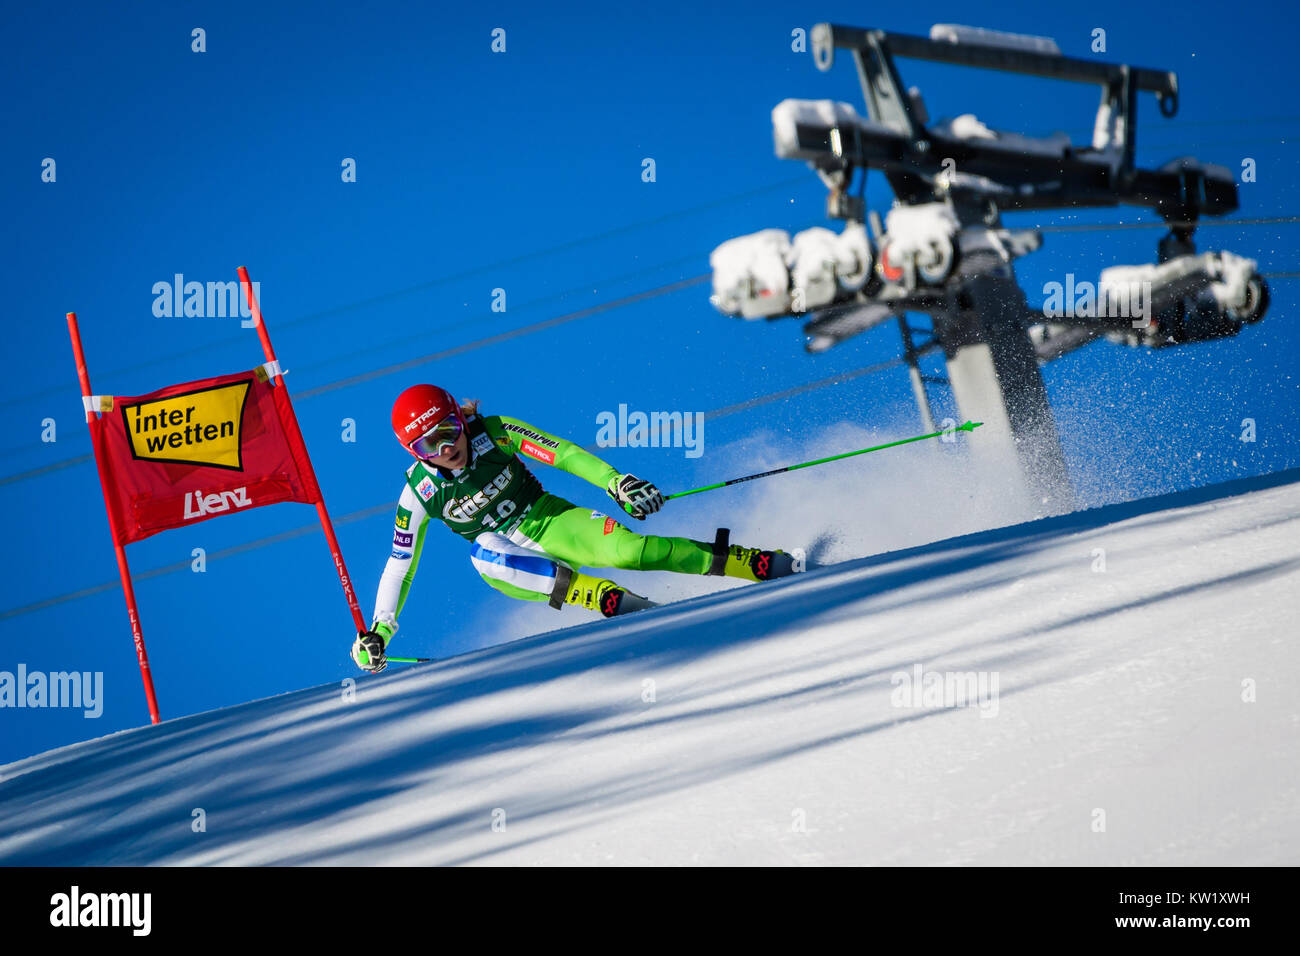 Lienz, Austria. 29th Dec, 2017. Ana Drev of Slovenia competes during the FIS World Cup Ladies Giant Slalom race - Stock Image